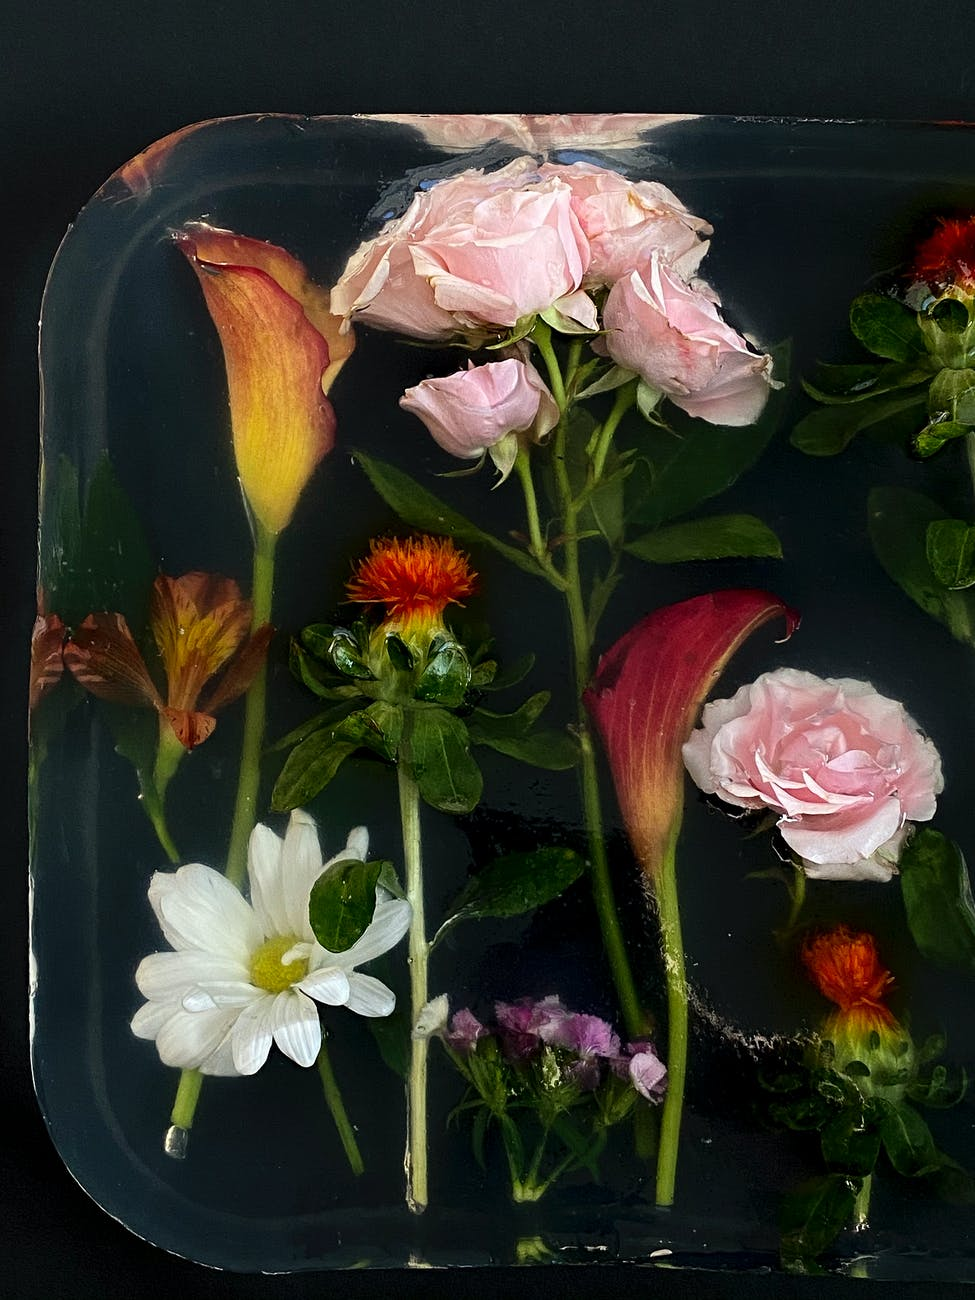 various colorful flowers in plastic container with water